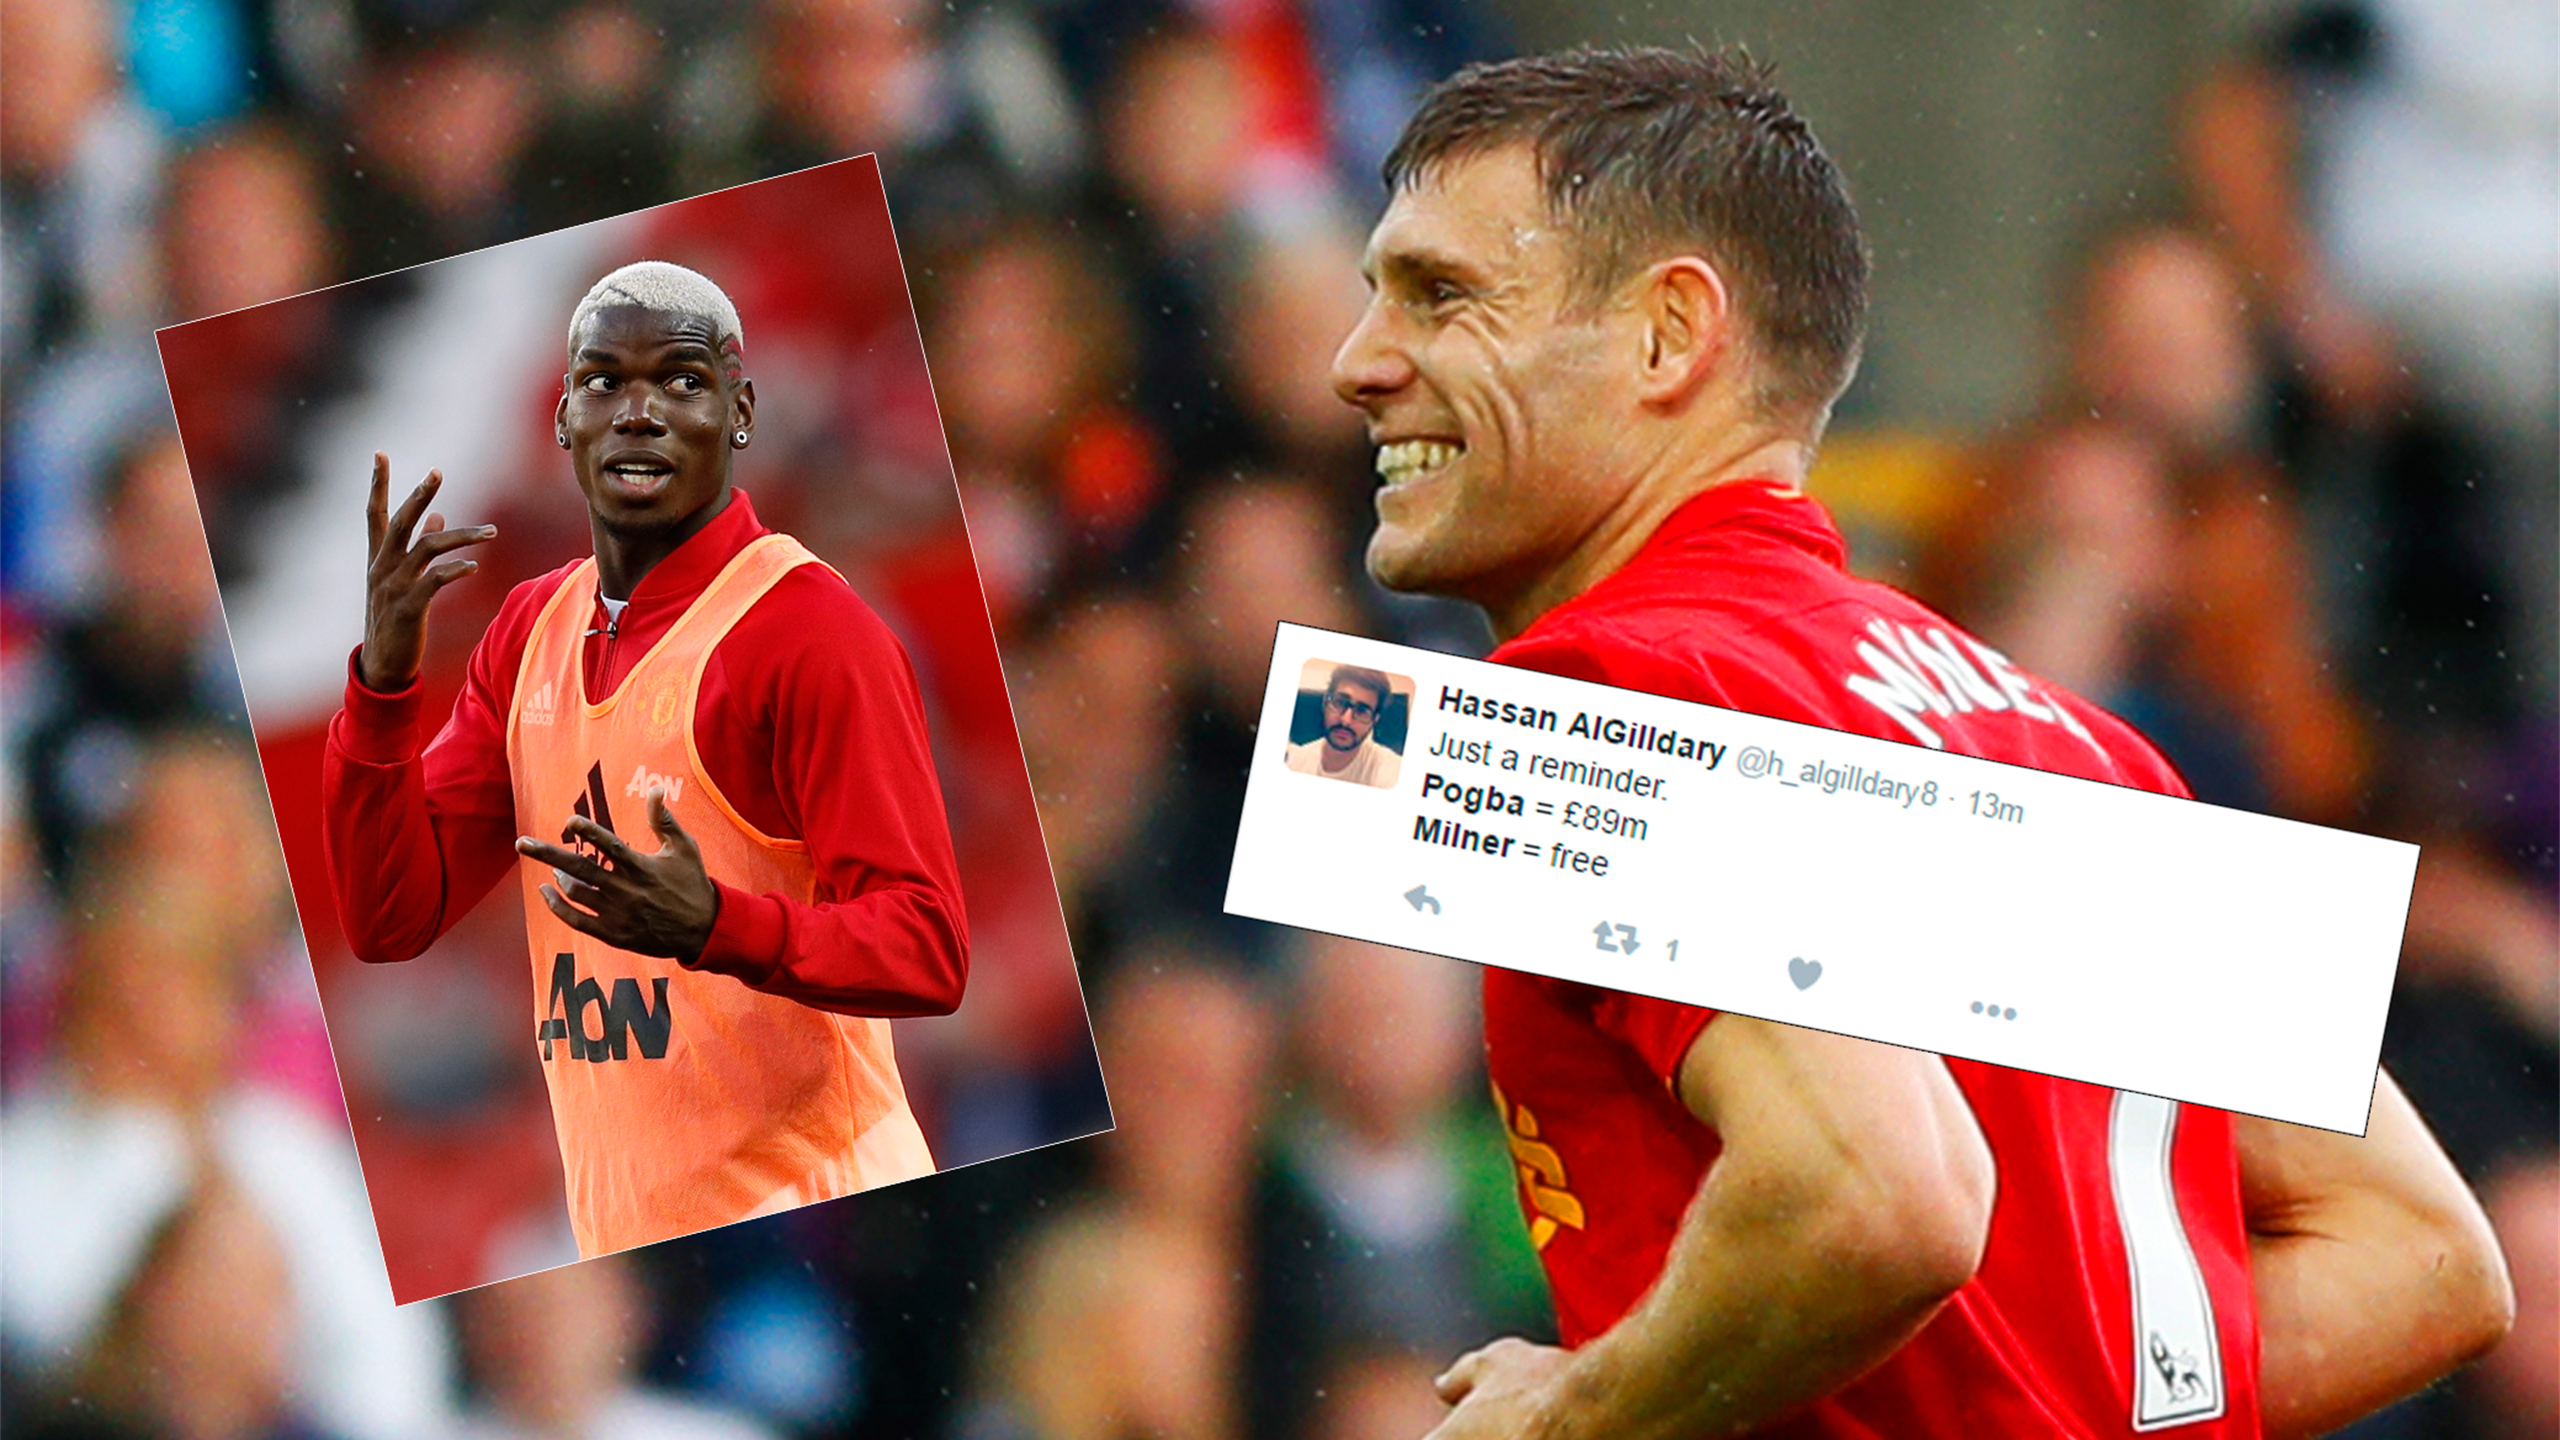 James Milner and Twitter reaction to comparisons between him and Paul Pogba